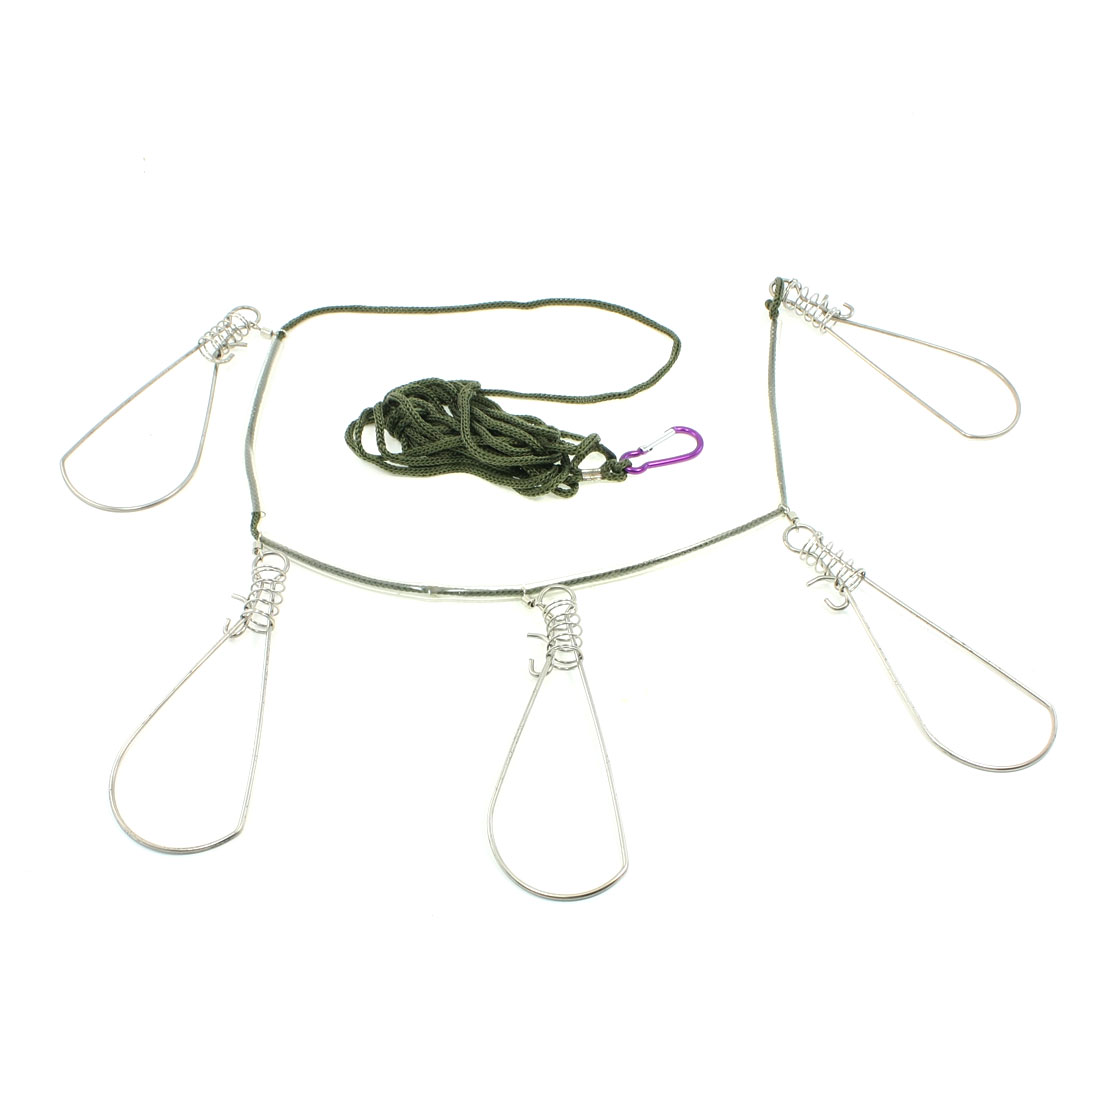 Safty Lobster Clip 12Ft Rope 5 Snaps Fish Stringer Fishing Tackle